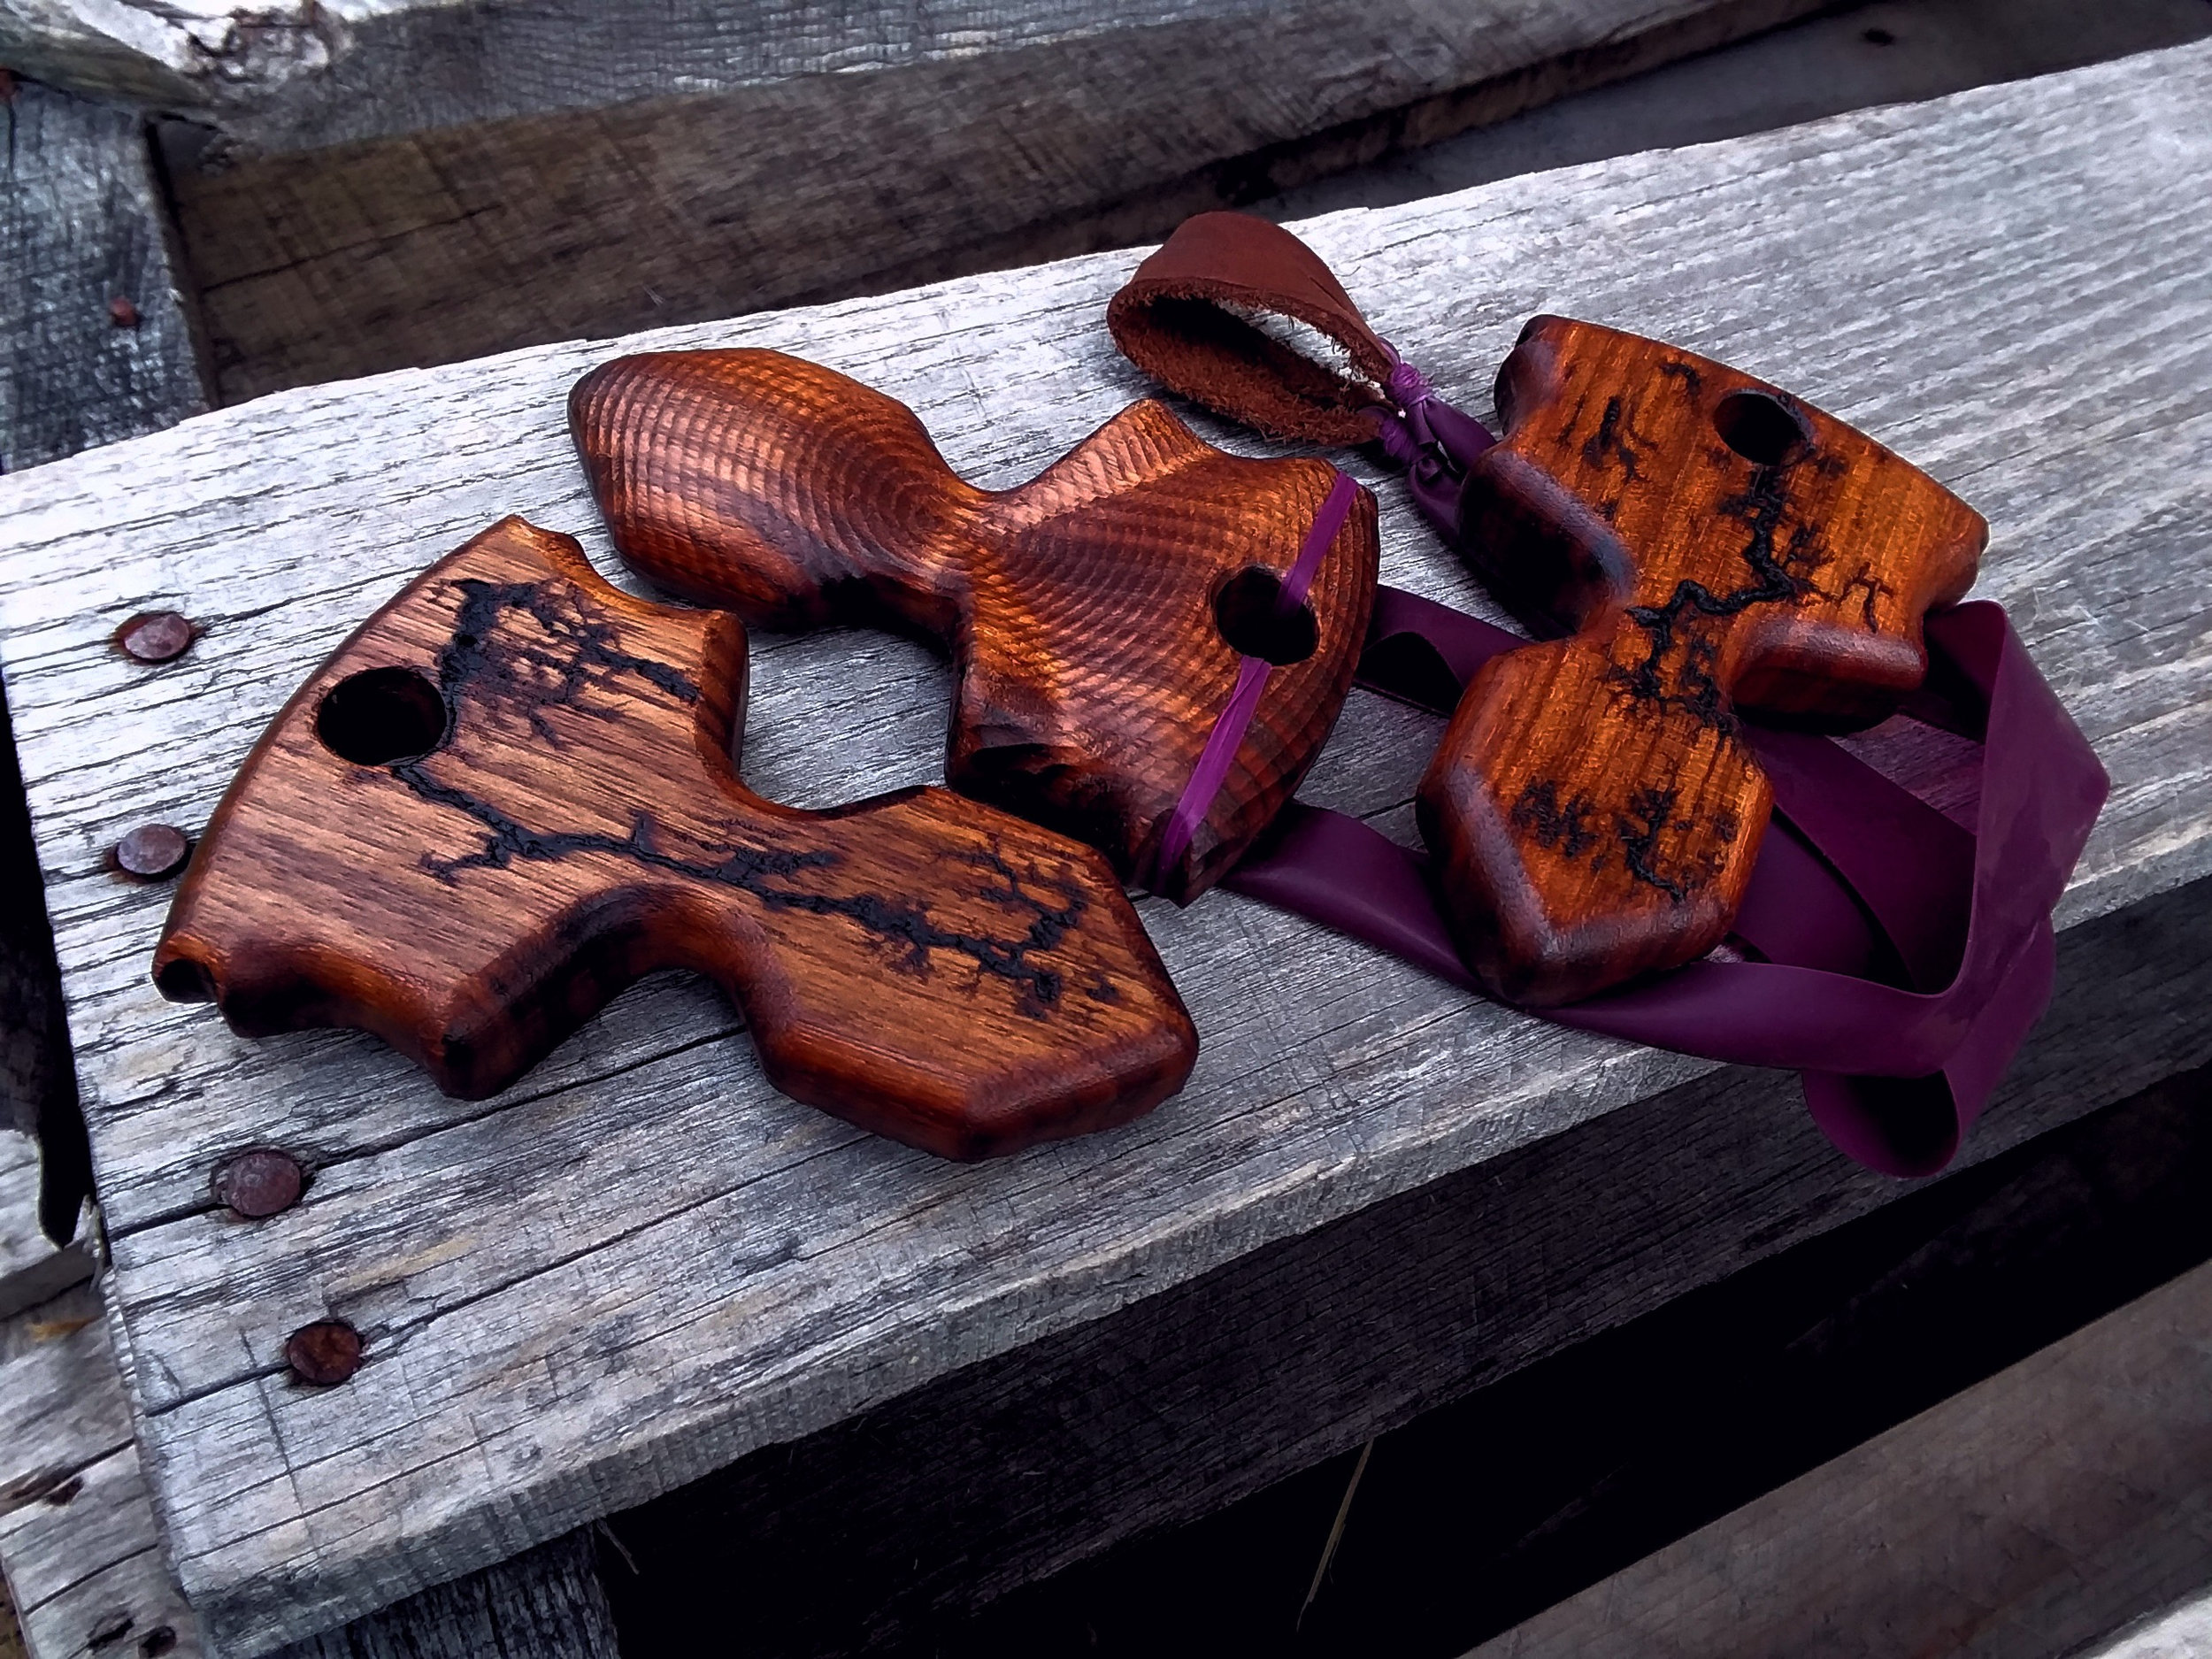 Our Nit slingshot in lightning strike walnut.